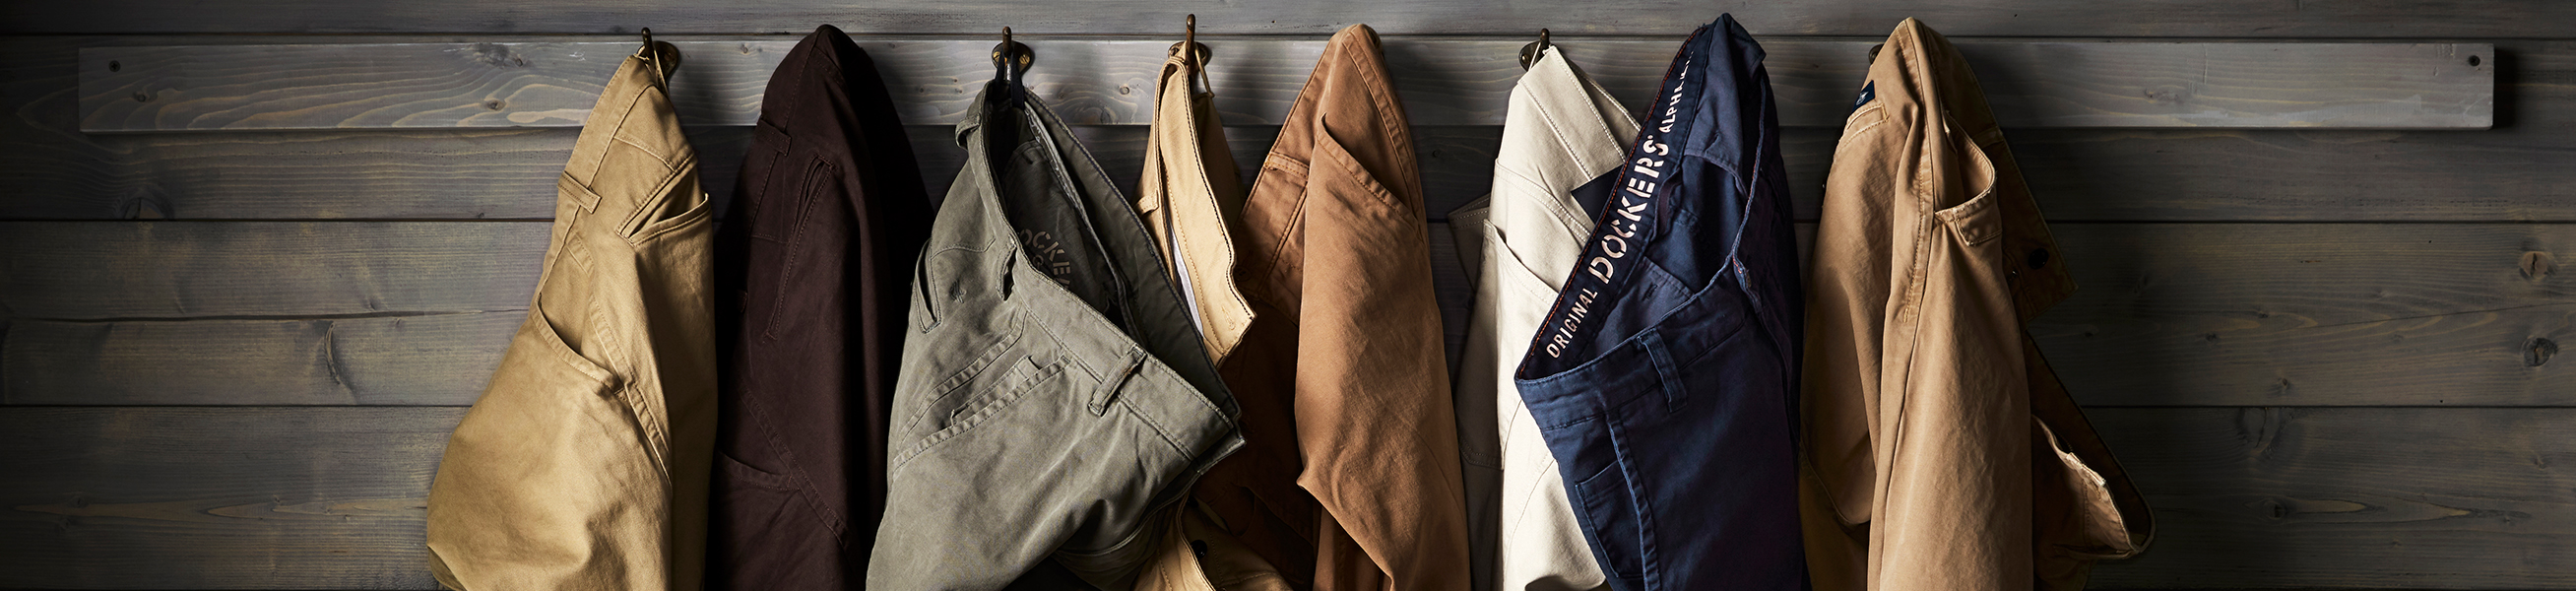 Dockers trouseres for Men